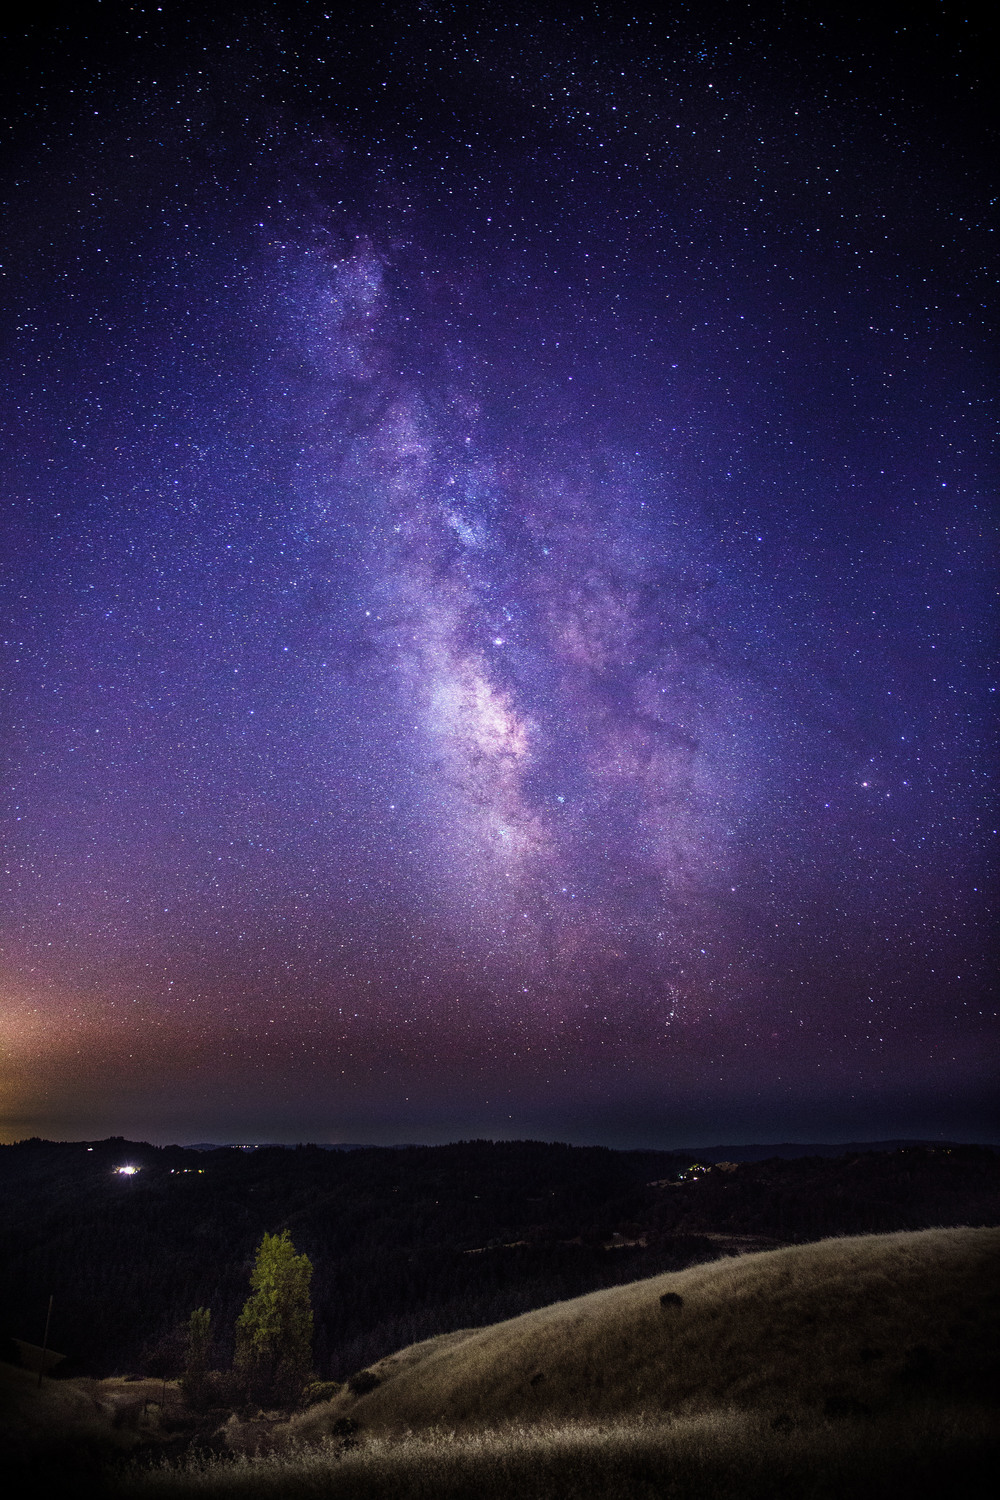 Milky Way over Monte Bello State Park